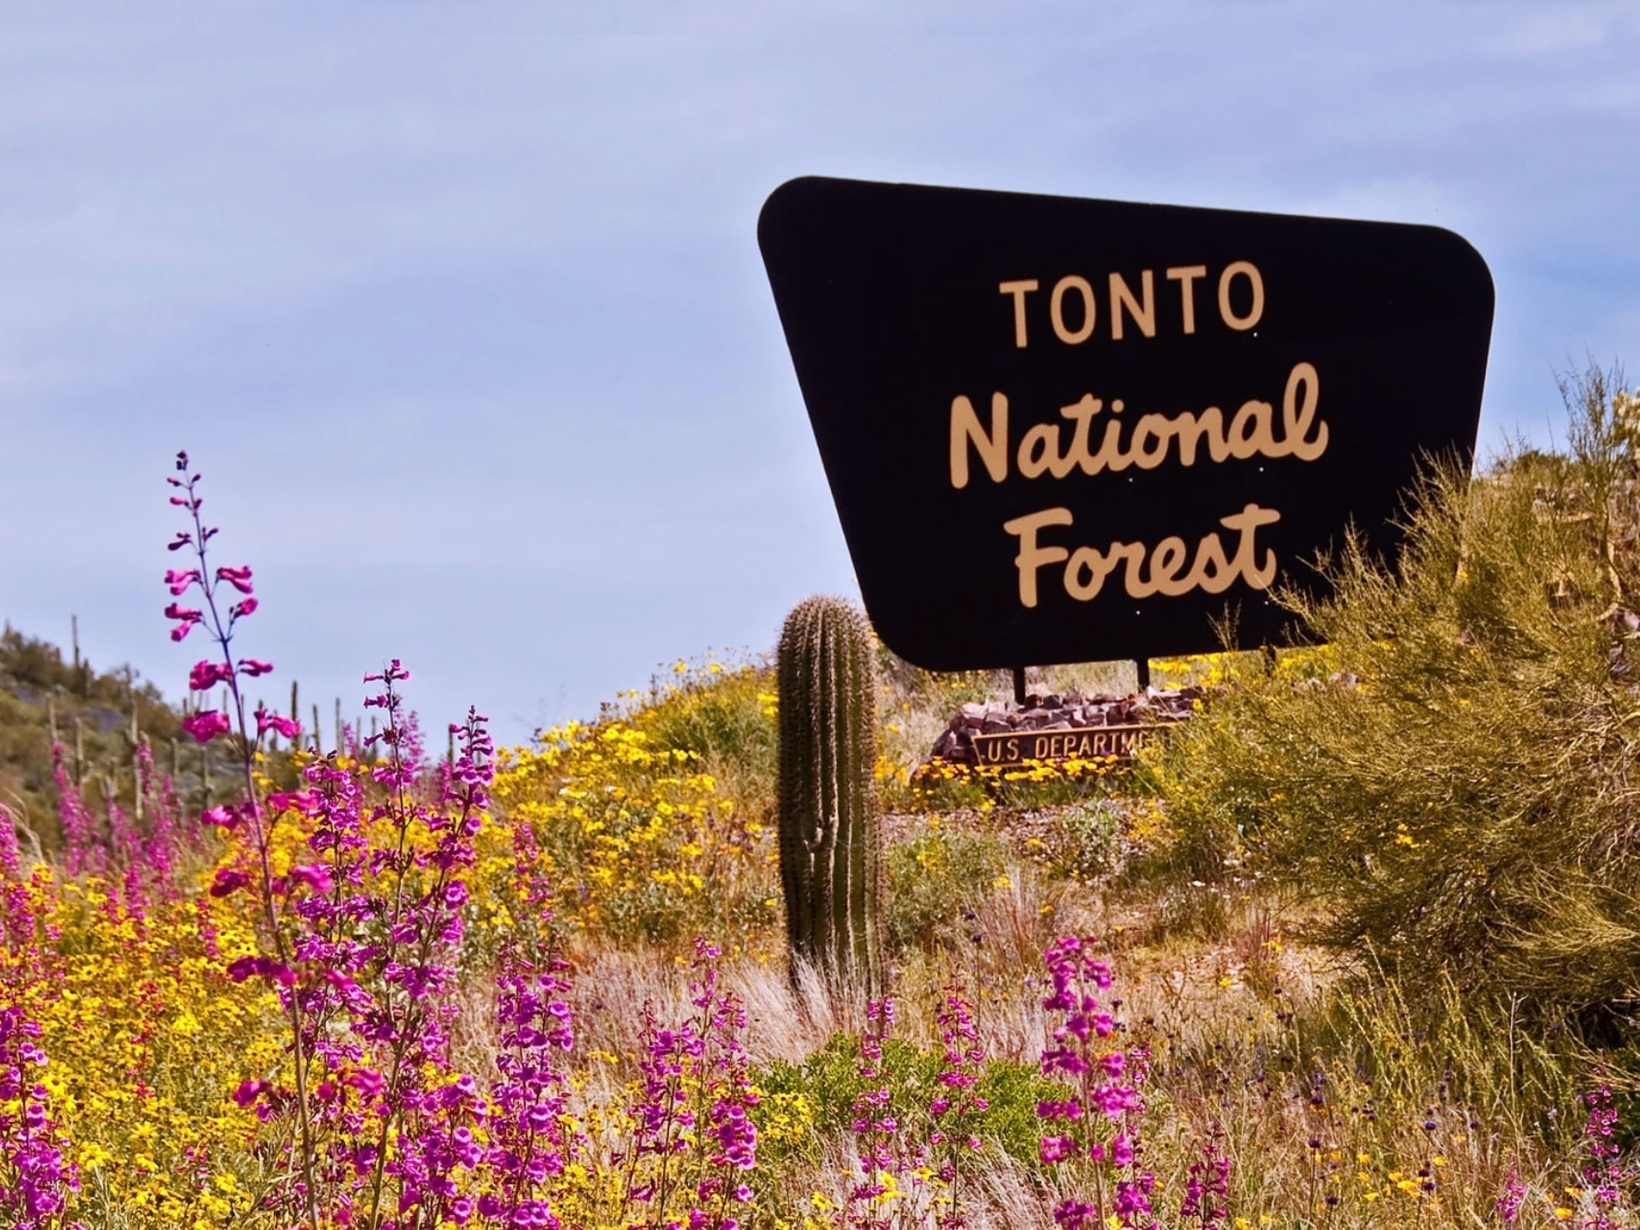 Tonto+National+Forest